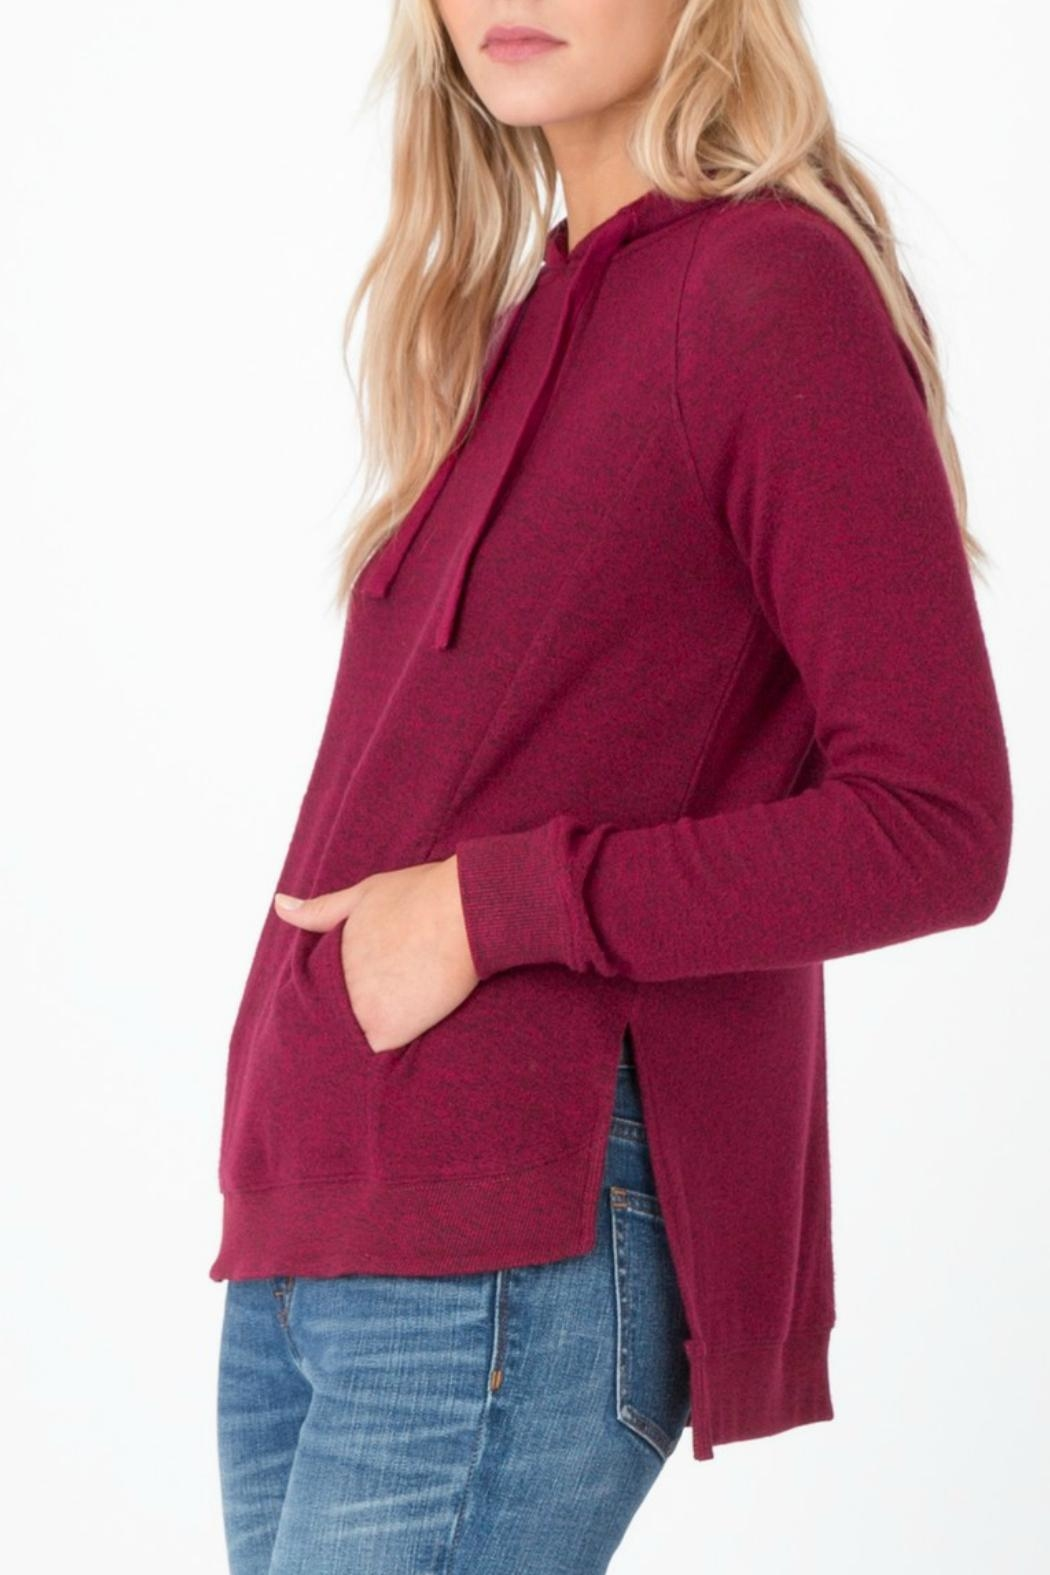 z supply Marled Pullover Cardigan - Side Cropped Image